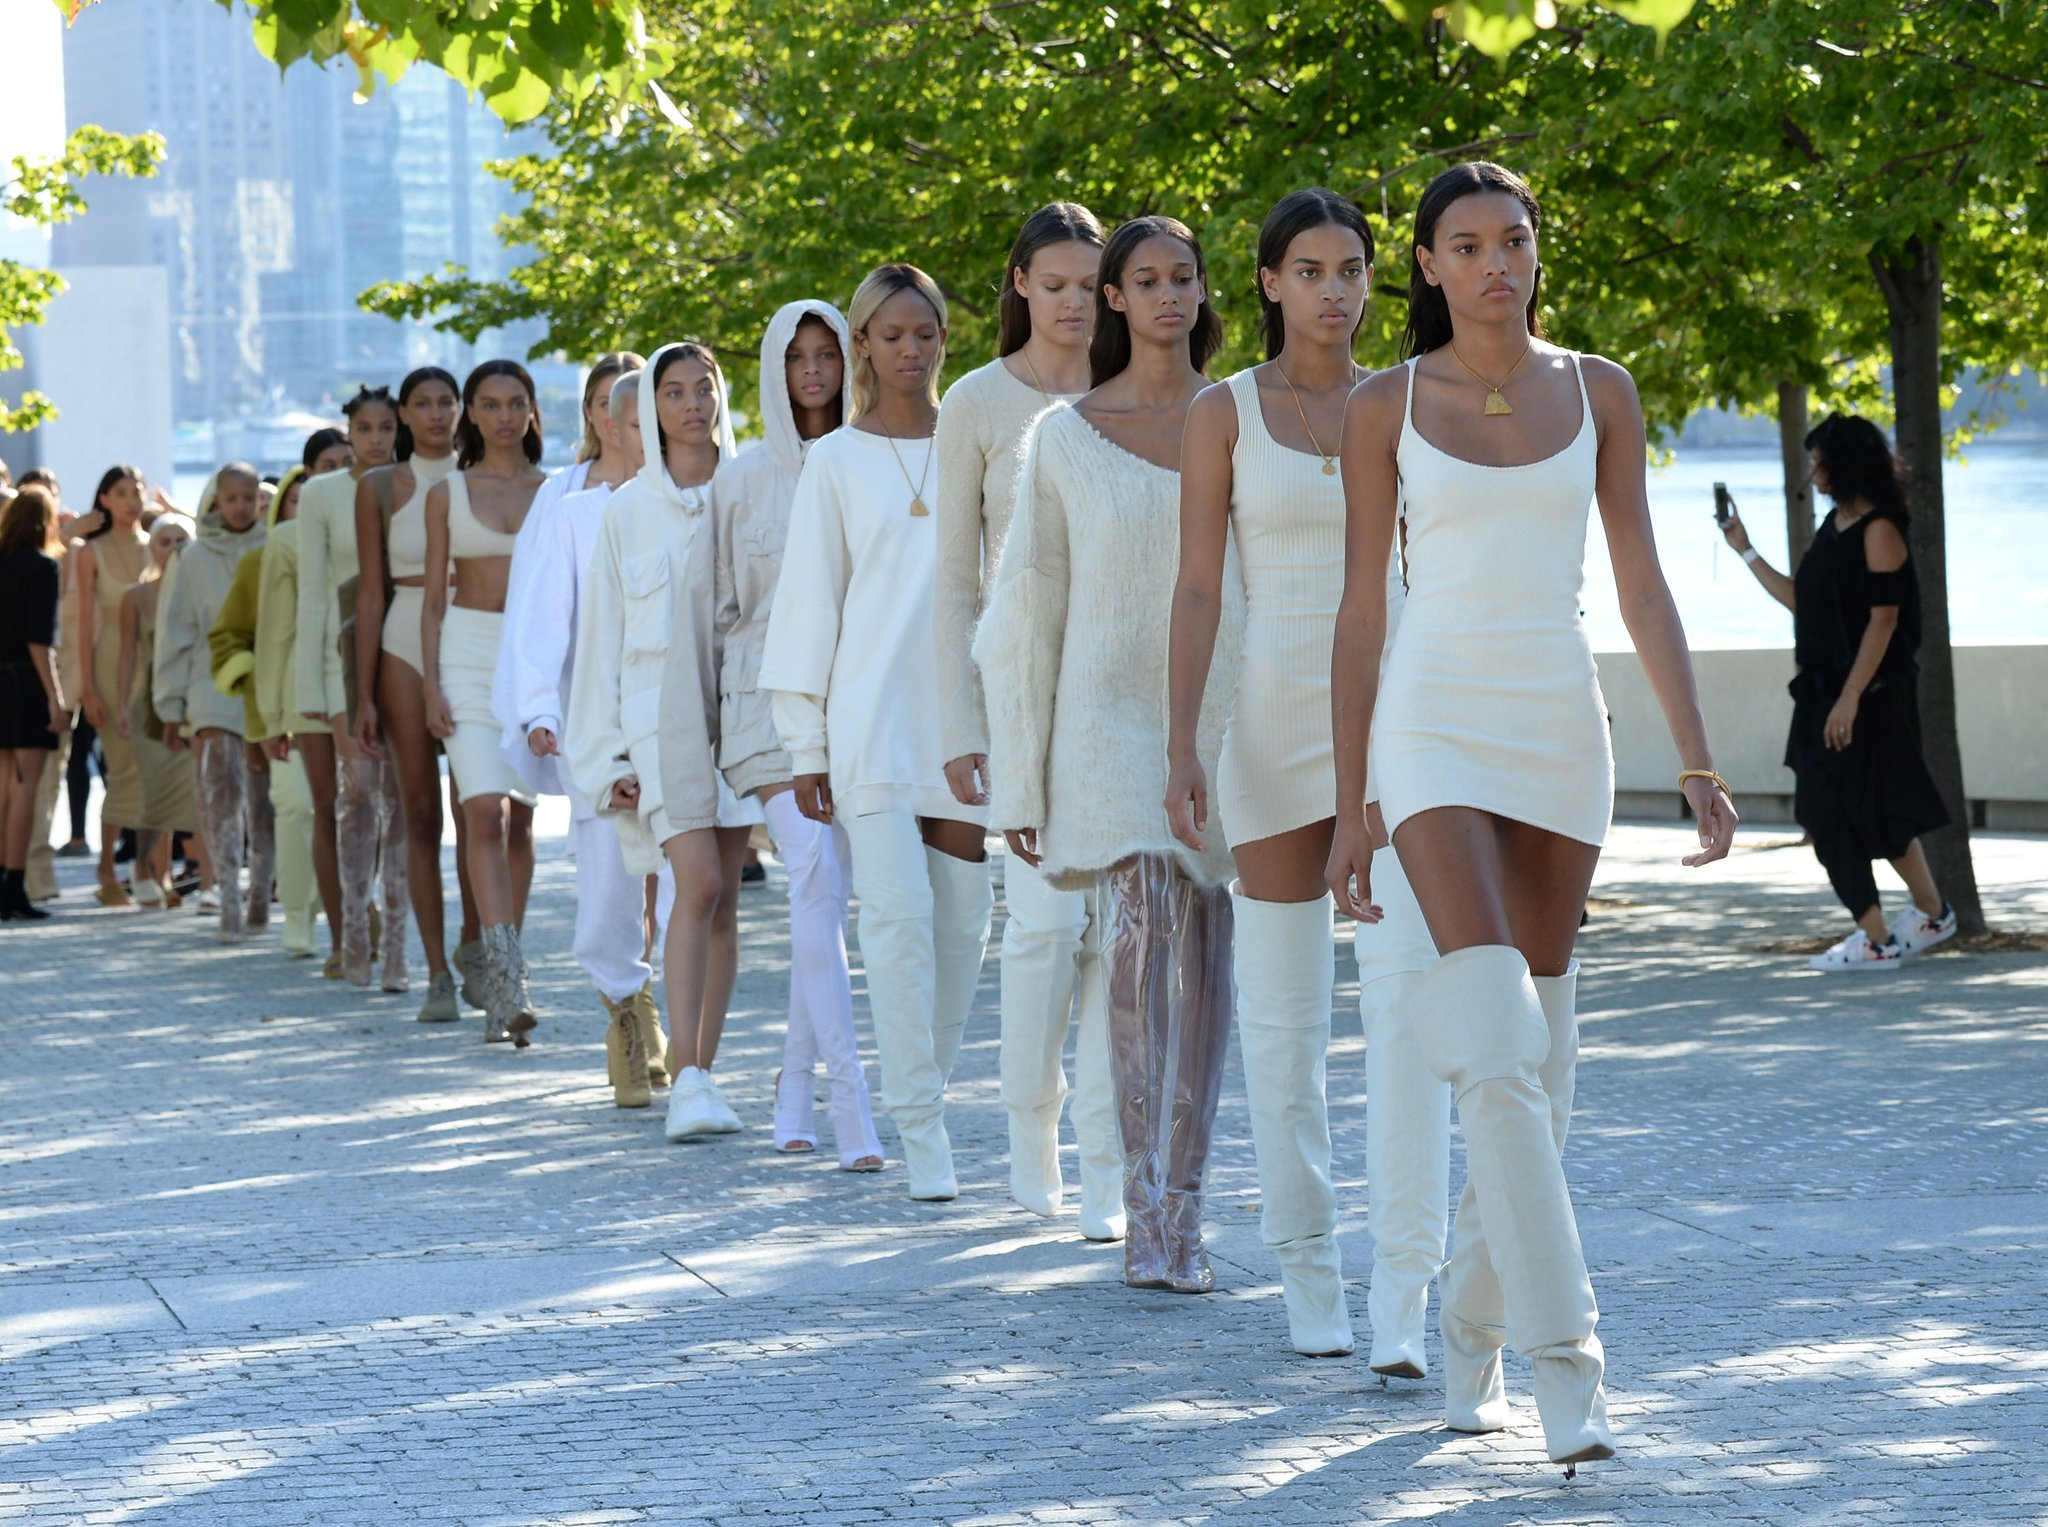 Kanye West's Season 5 show is off to a rocky start - West scheduled the show without consulting with the CDFA, and it clashed with Assembly and Marchesa.  The CDFA responded by refusing to put West's show on the official schedule, although West has since changed his show time to avoid clashes.